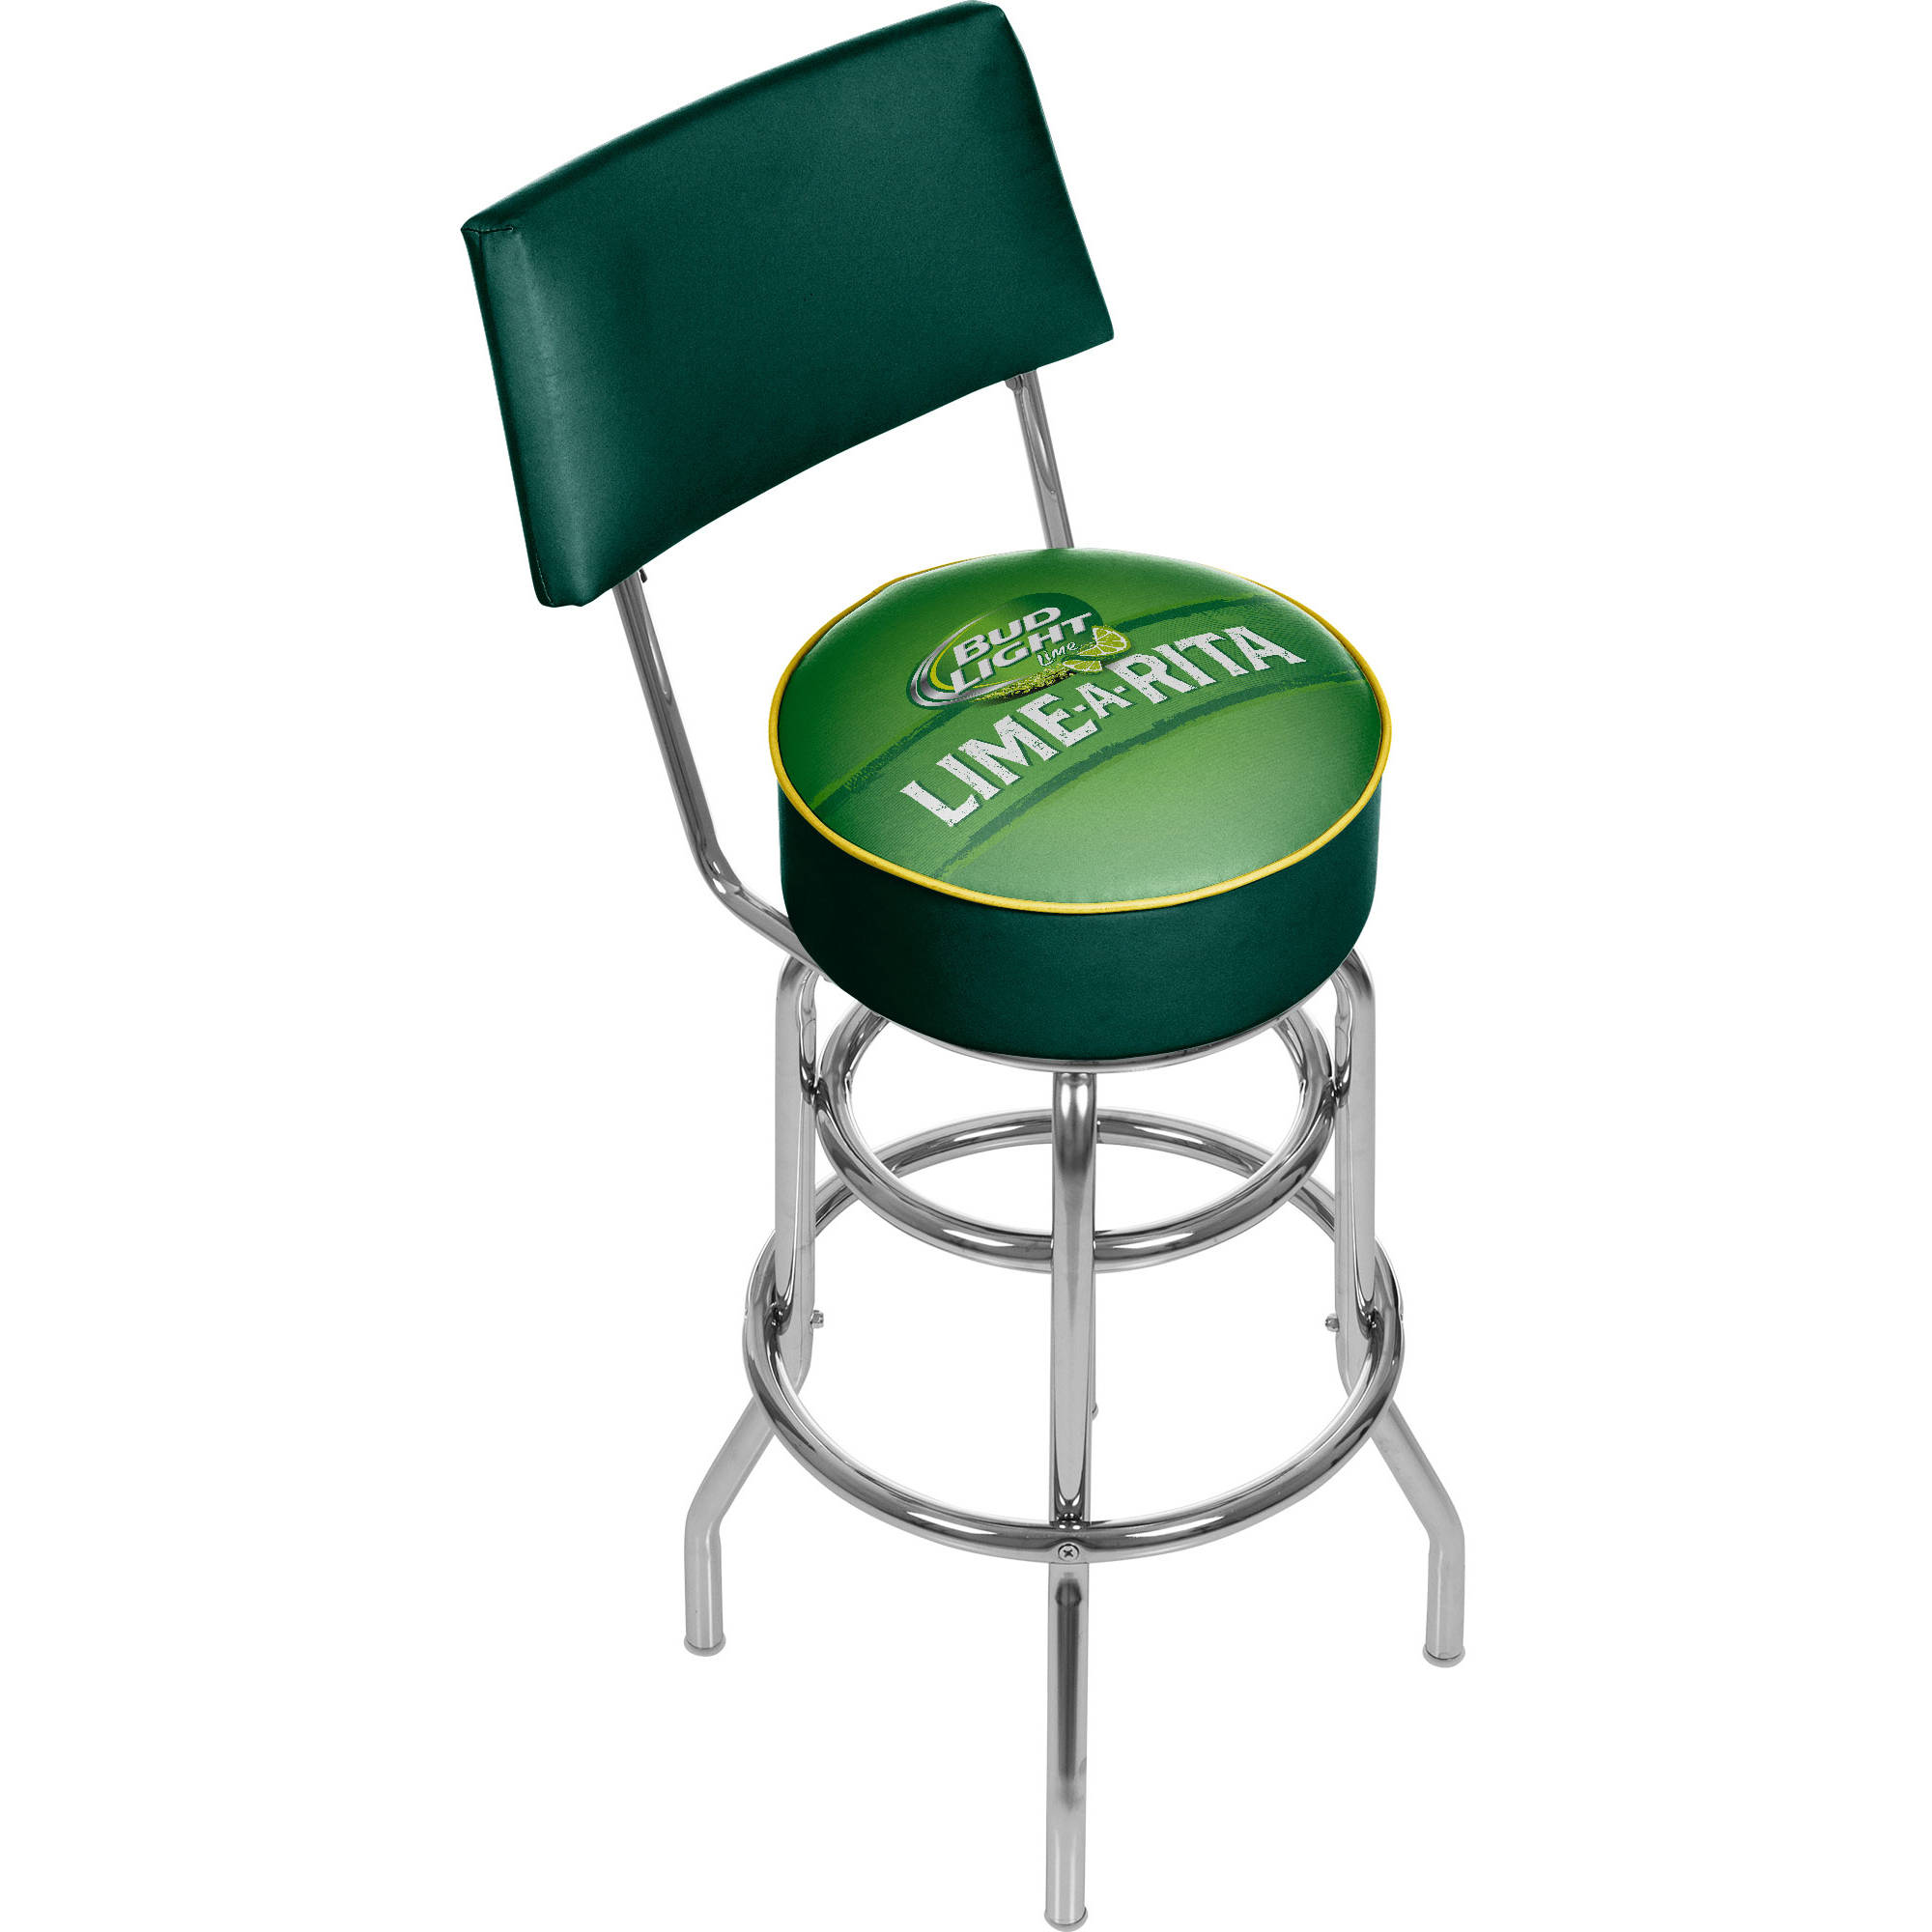 Bud Light Lime-A-Rita Swivel Bar Stool with Back